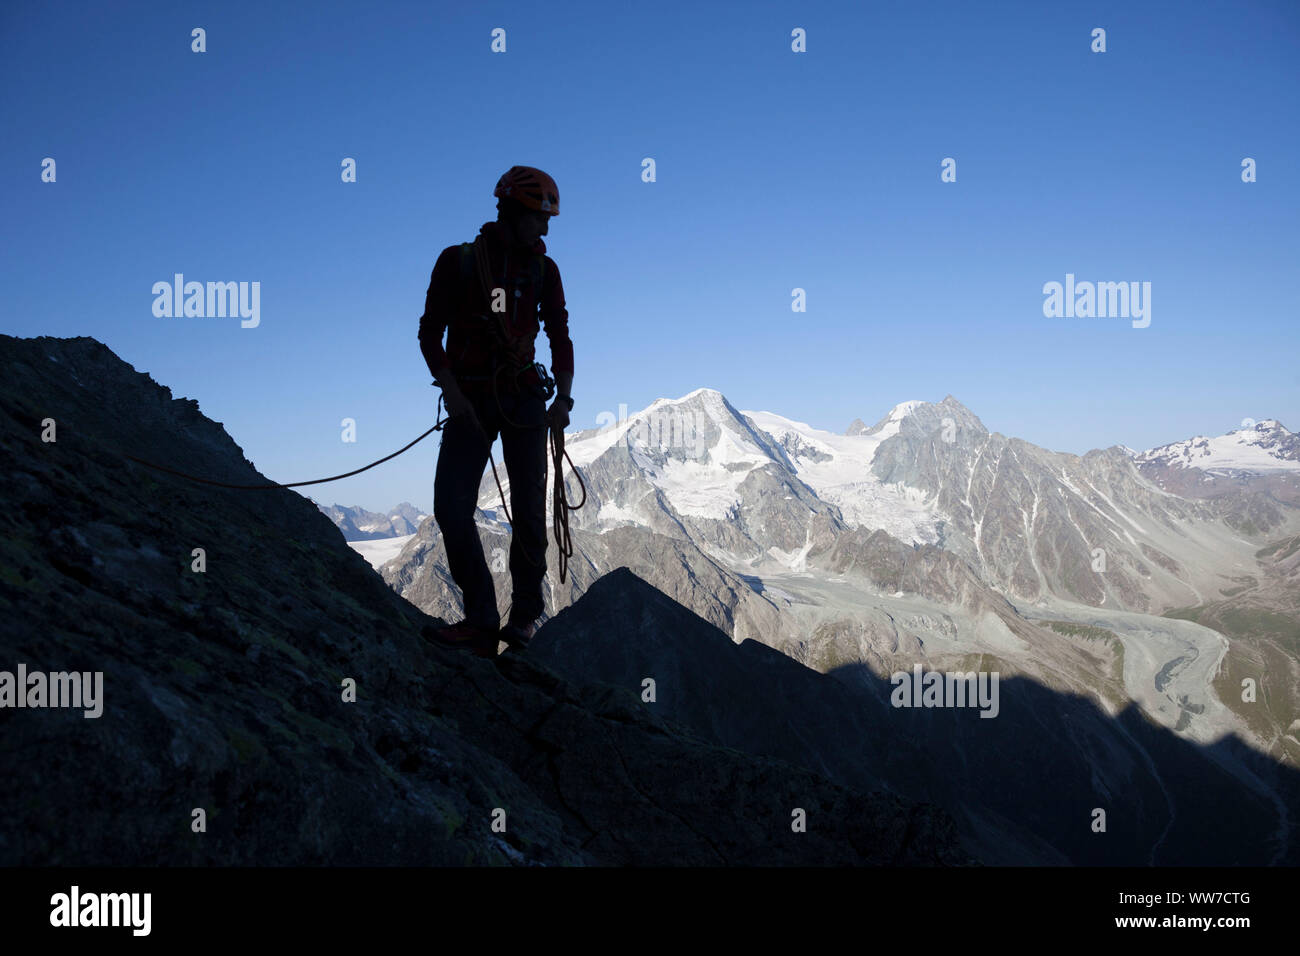 Climbing the summit of Dent de Tsalion over Arolla with views of Pigne d'Arolla and Mont Blanc de Cheilon, Val d'Hérens, Valais, Switzerland Stock Photo